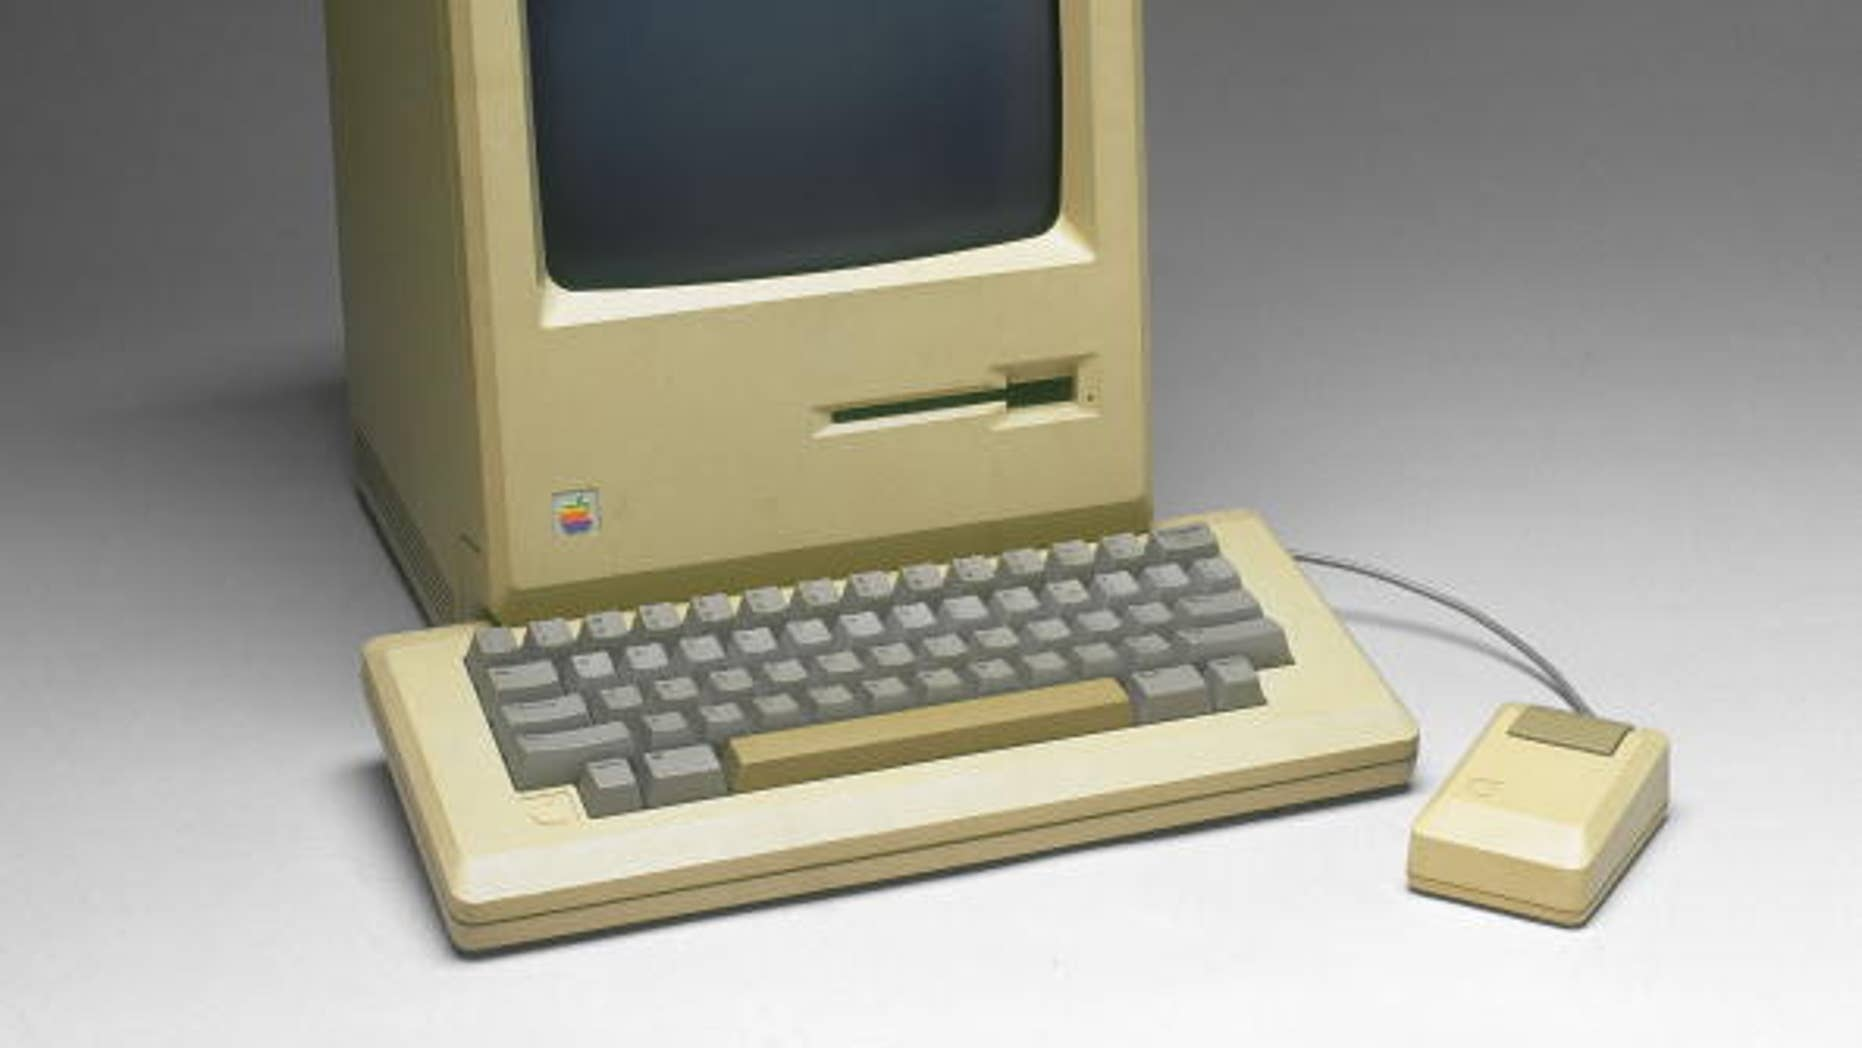 UNITED STATES - APRIL 06: Apple Macintosh computer, model M001, with keyboard and mouse. (Photo by SSPL/Getty Images)